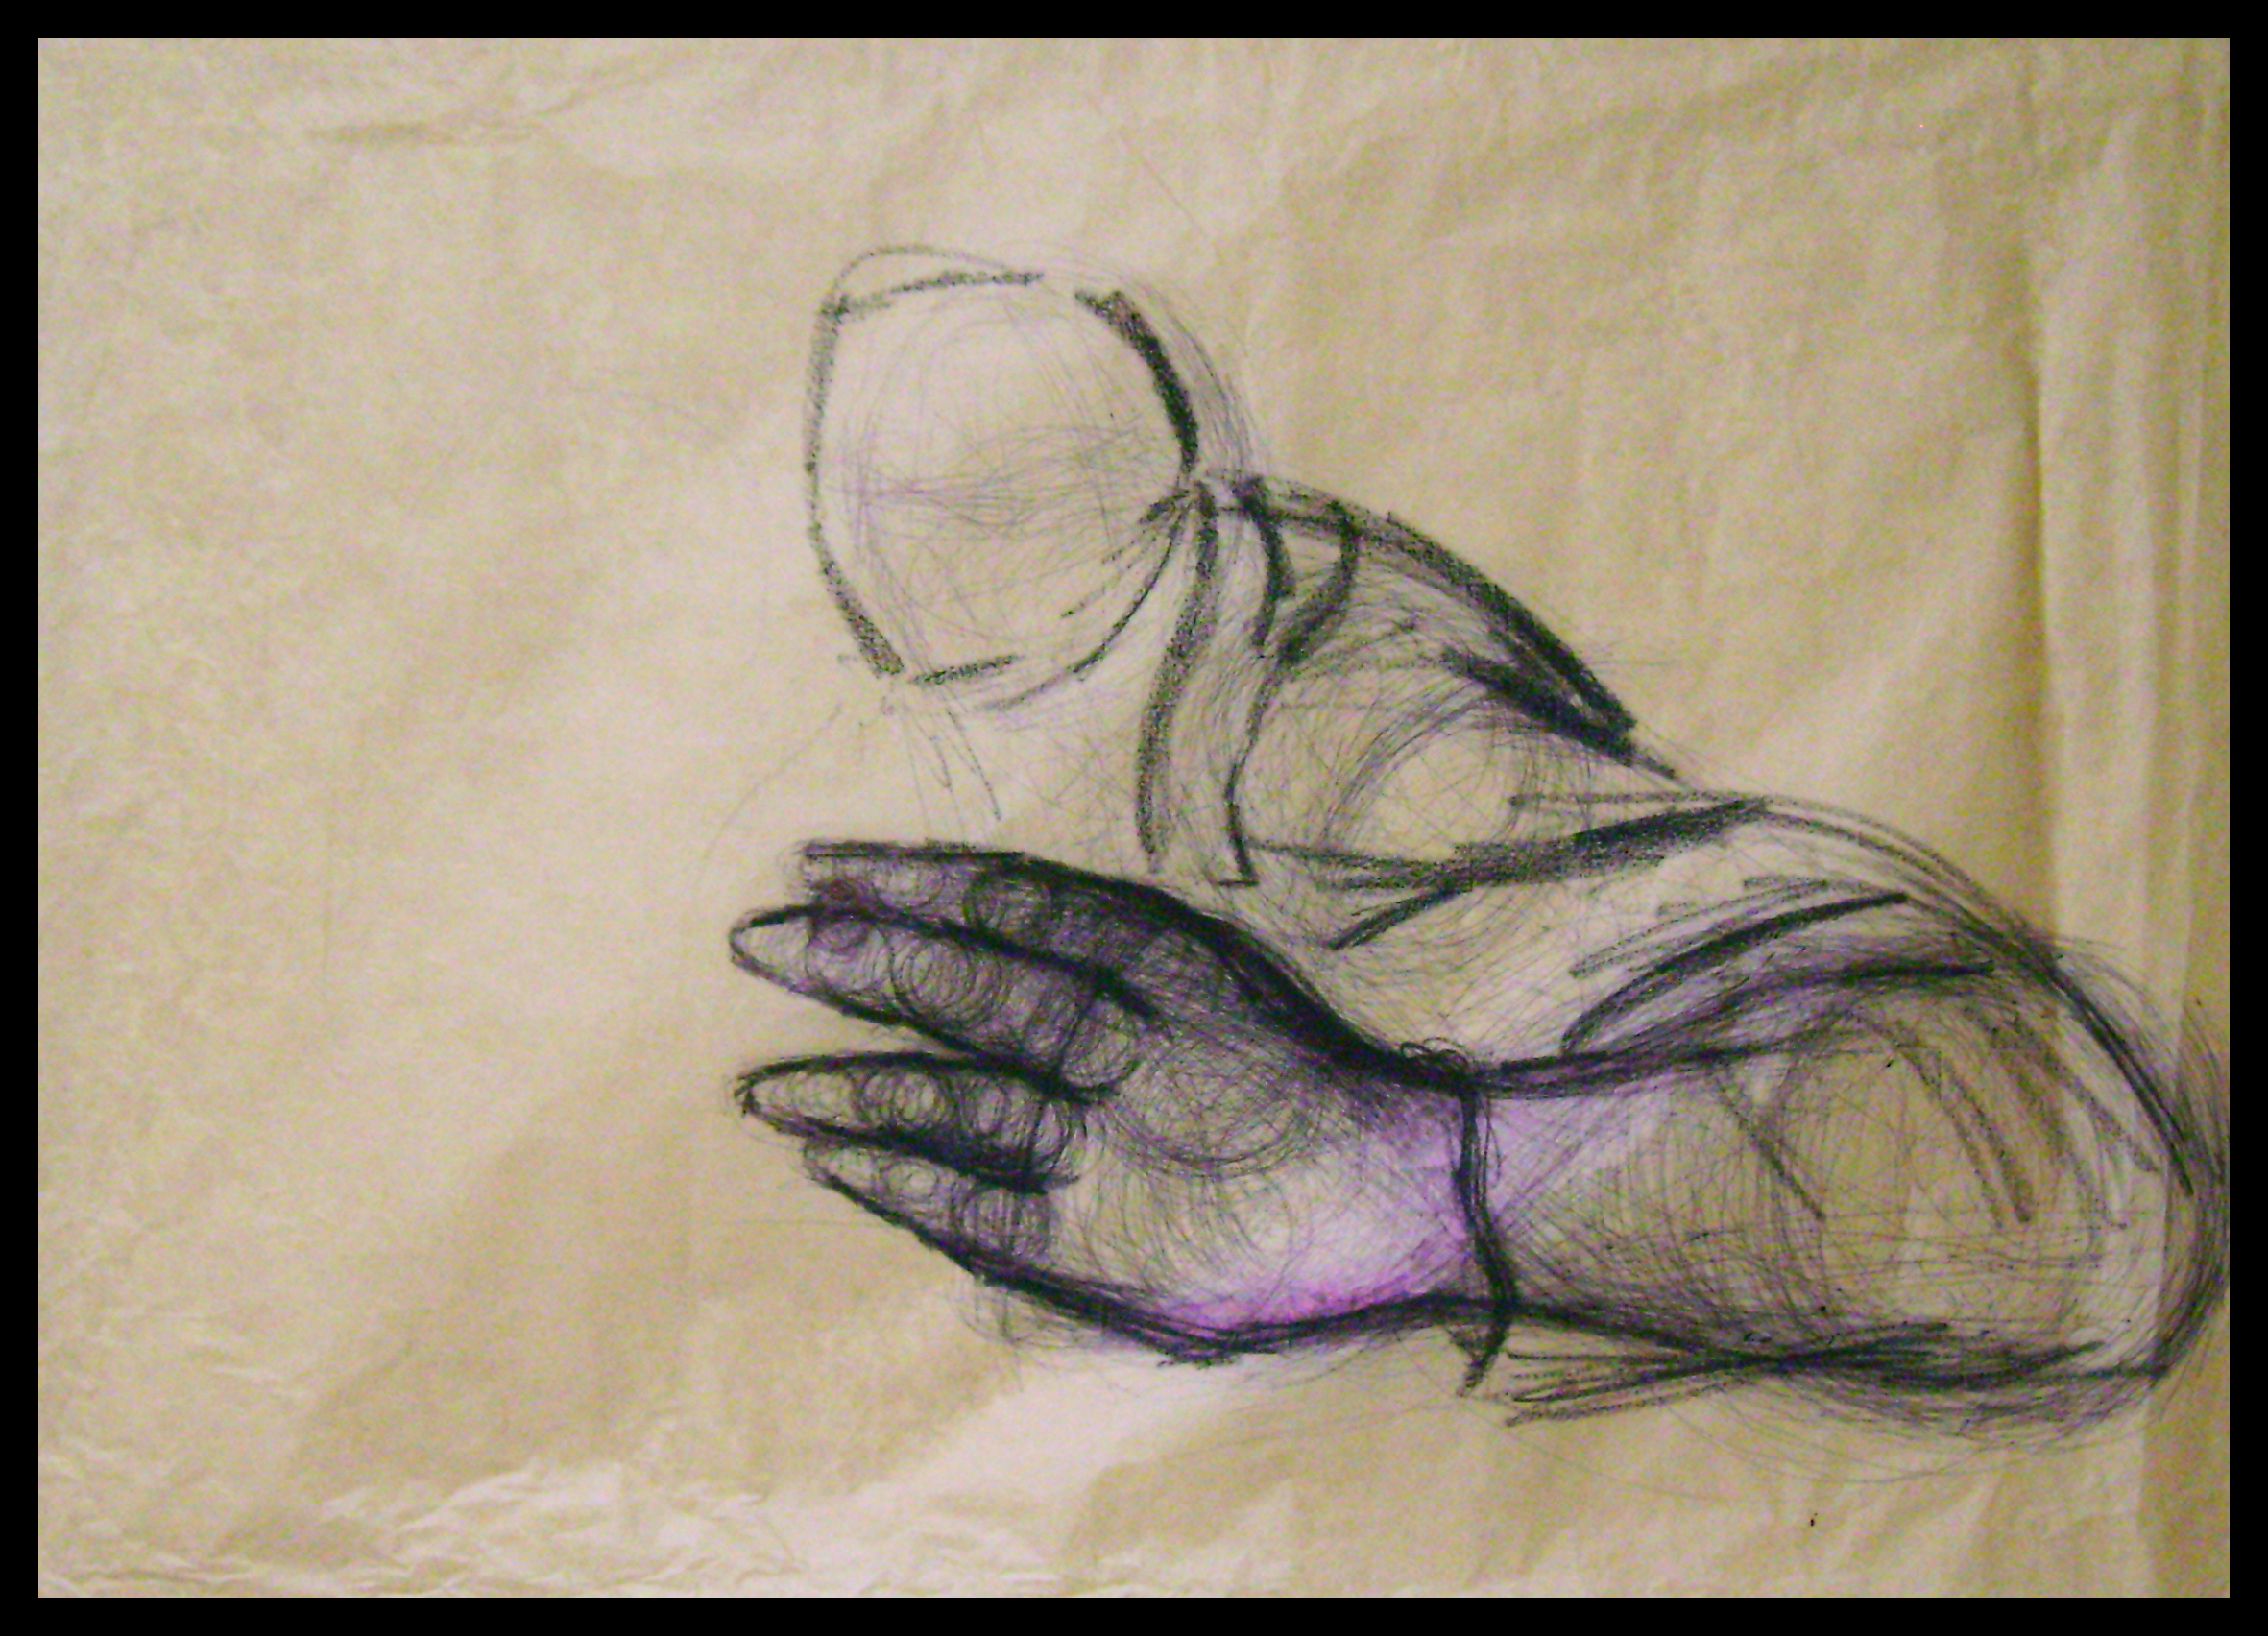 Sketch - Different Viewpoints, 2007